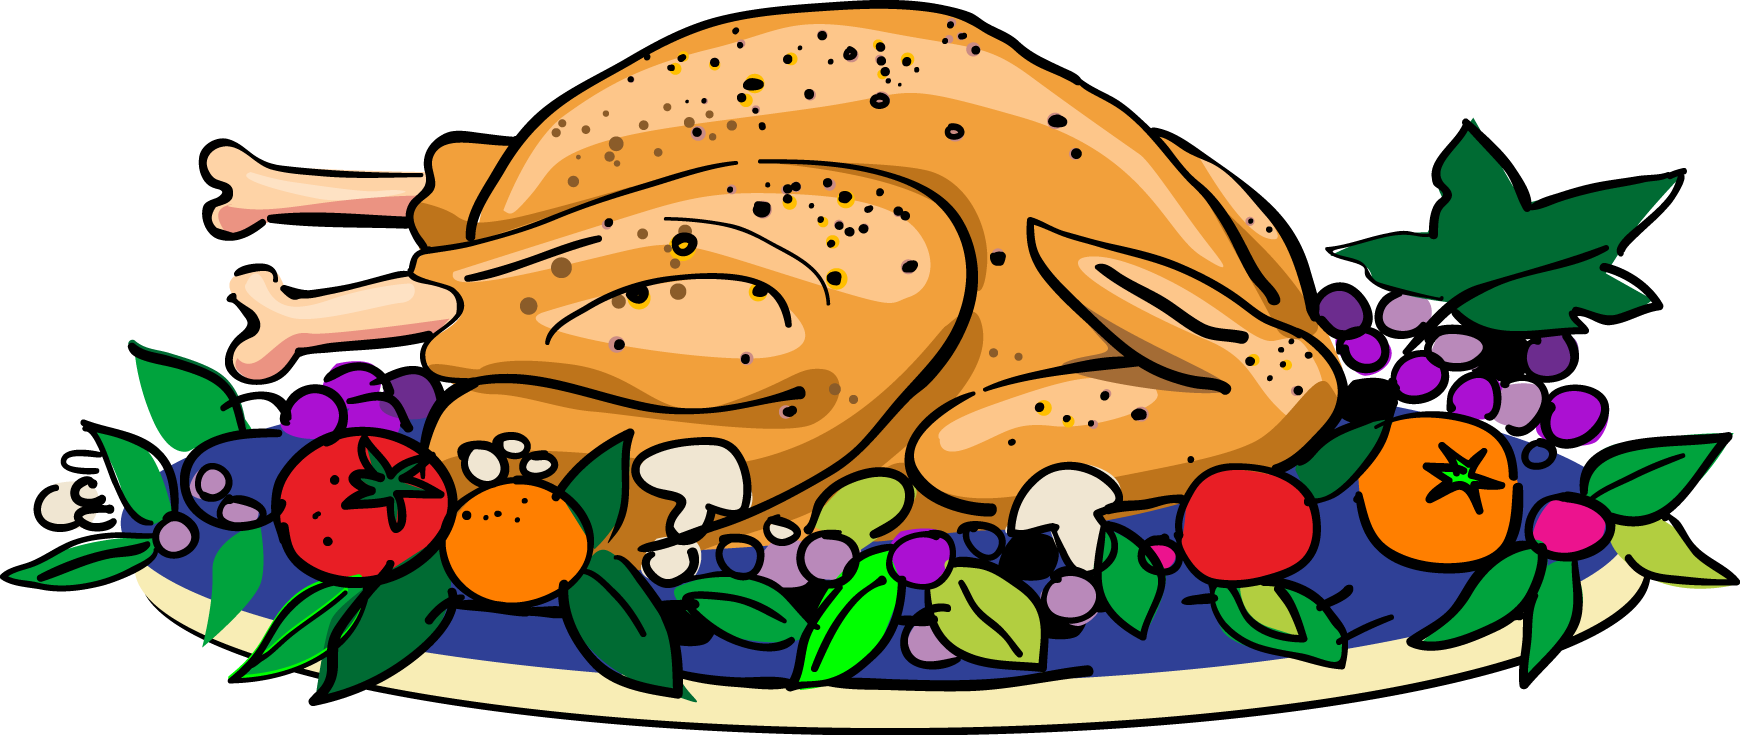 Luncheon clipart lunch item. Feast group gallery turkey